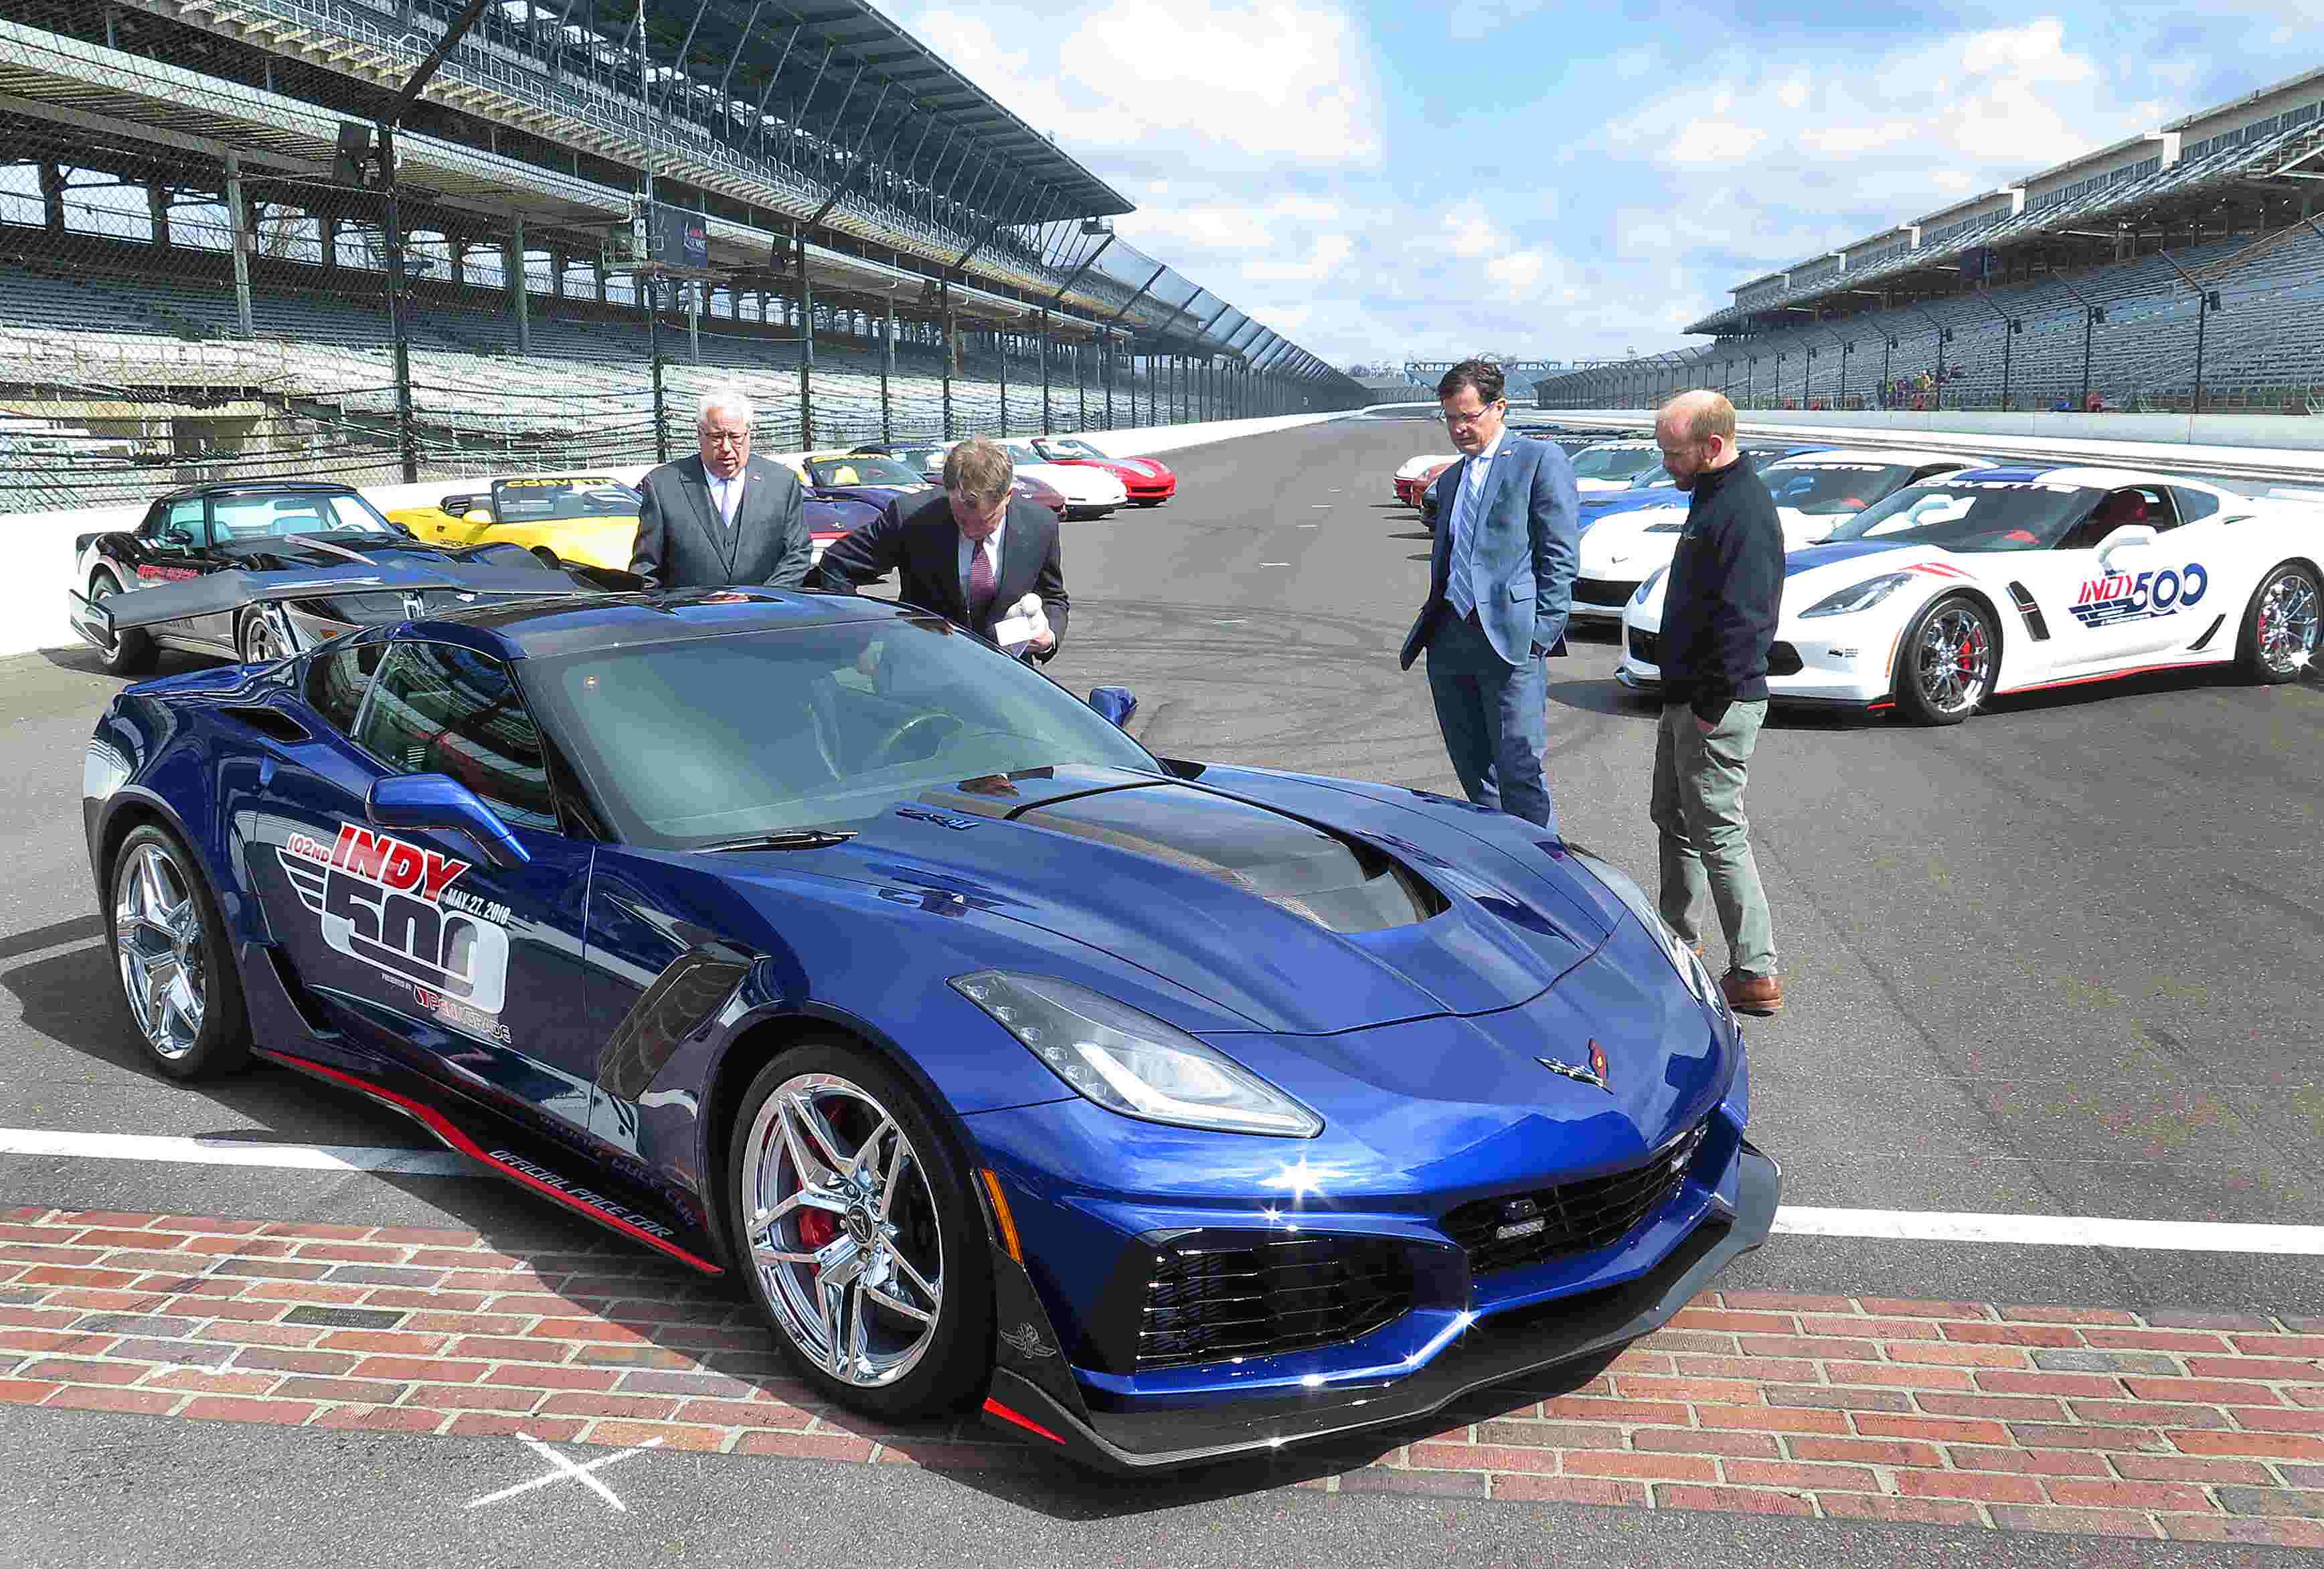 indianapolis 500 pace car drivers